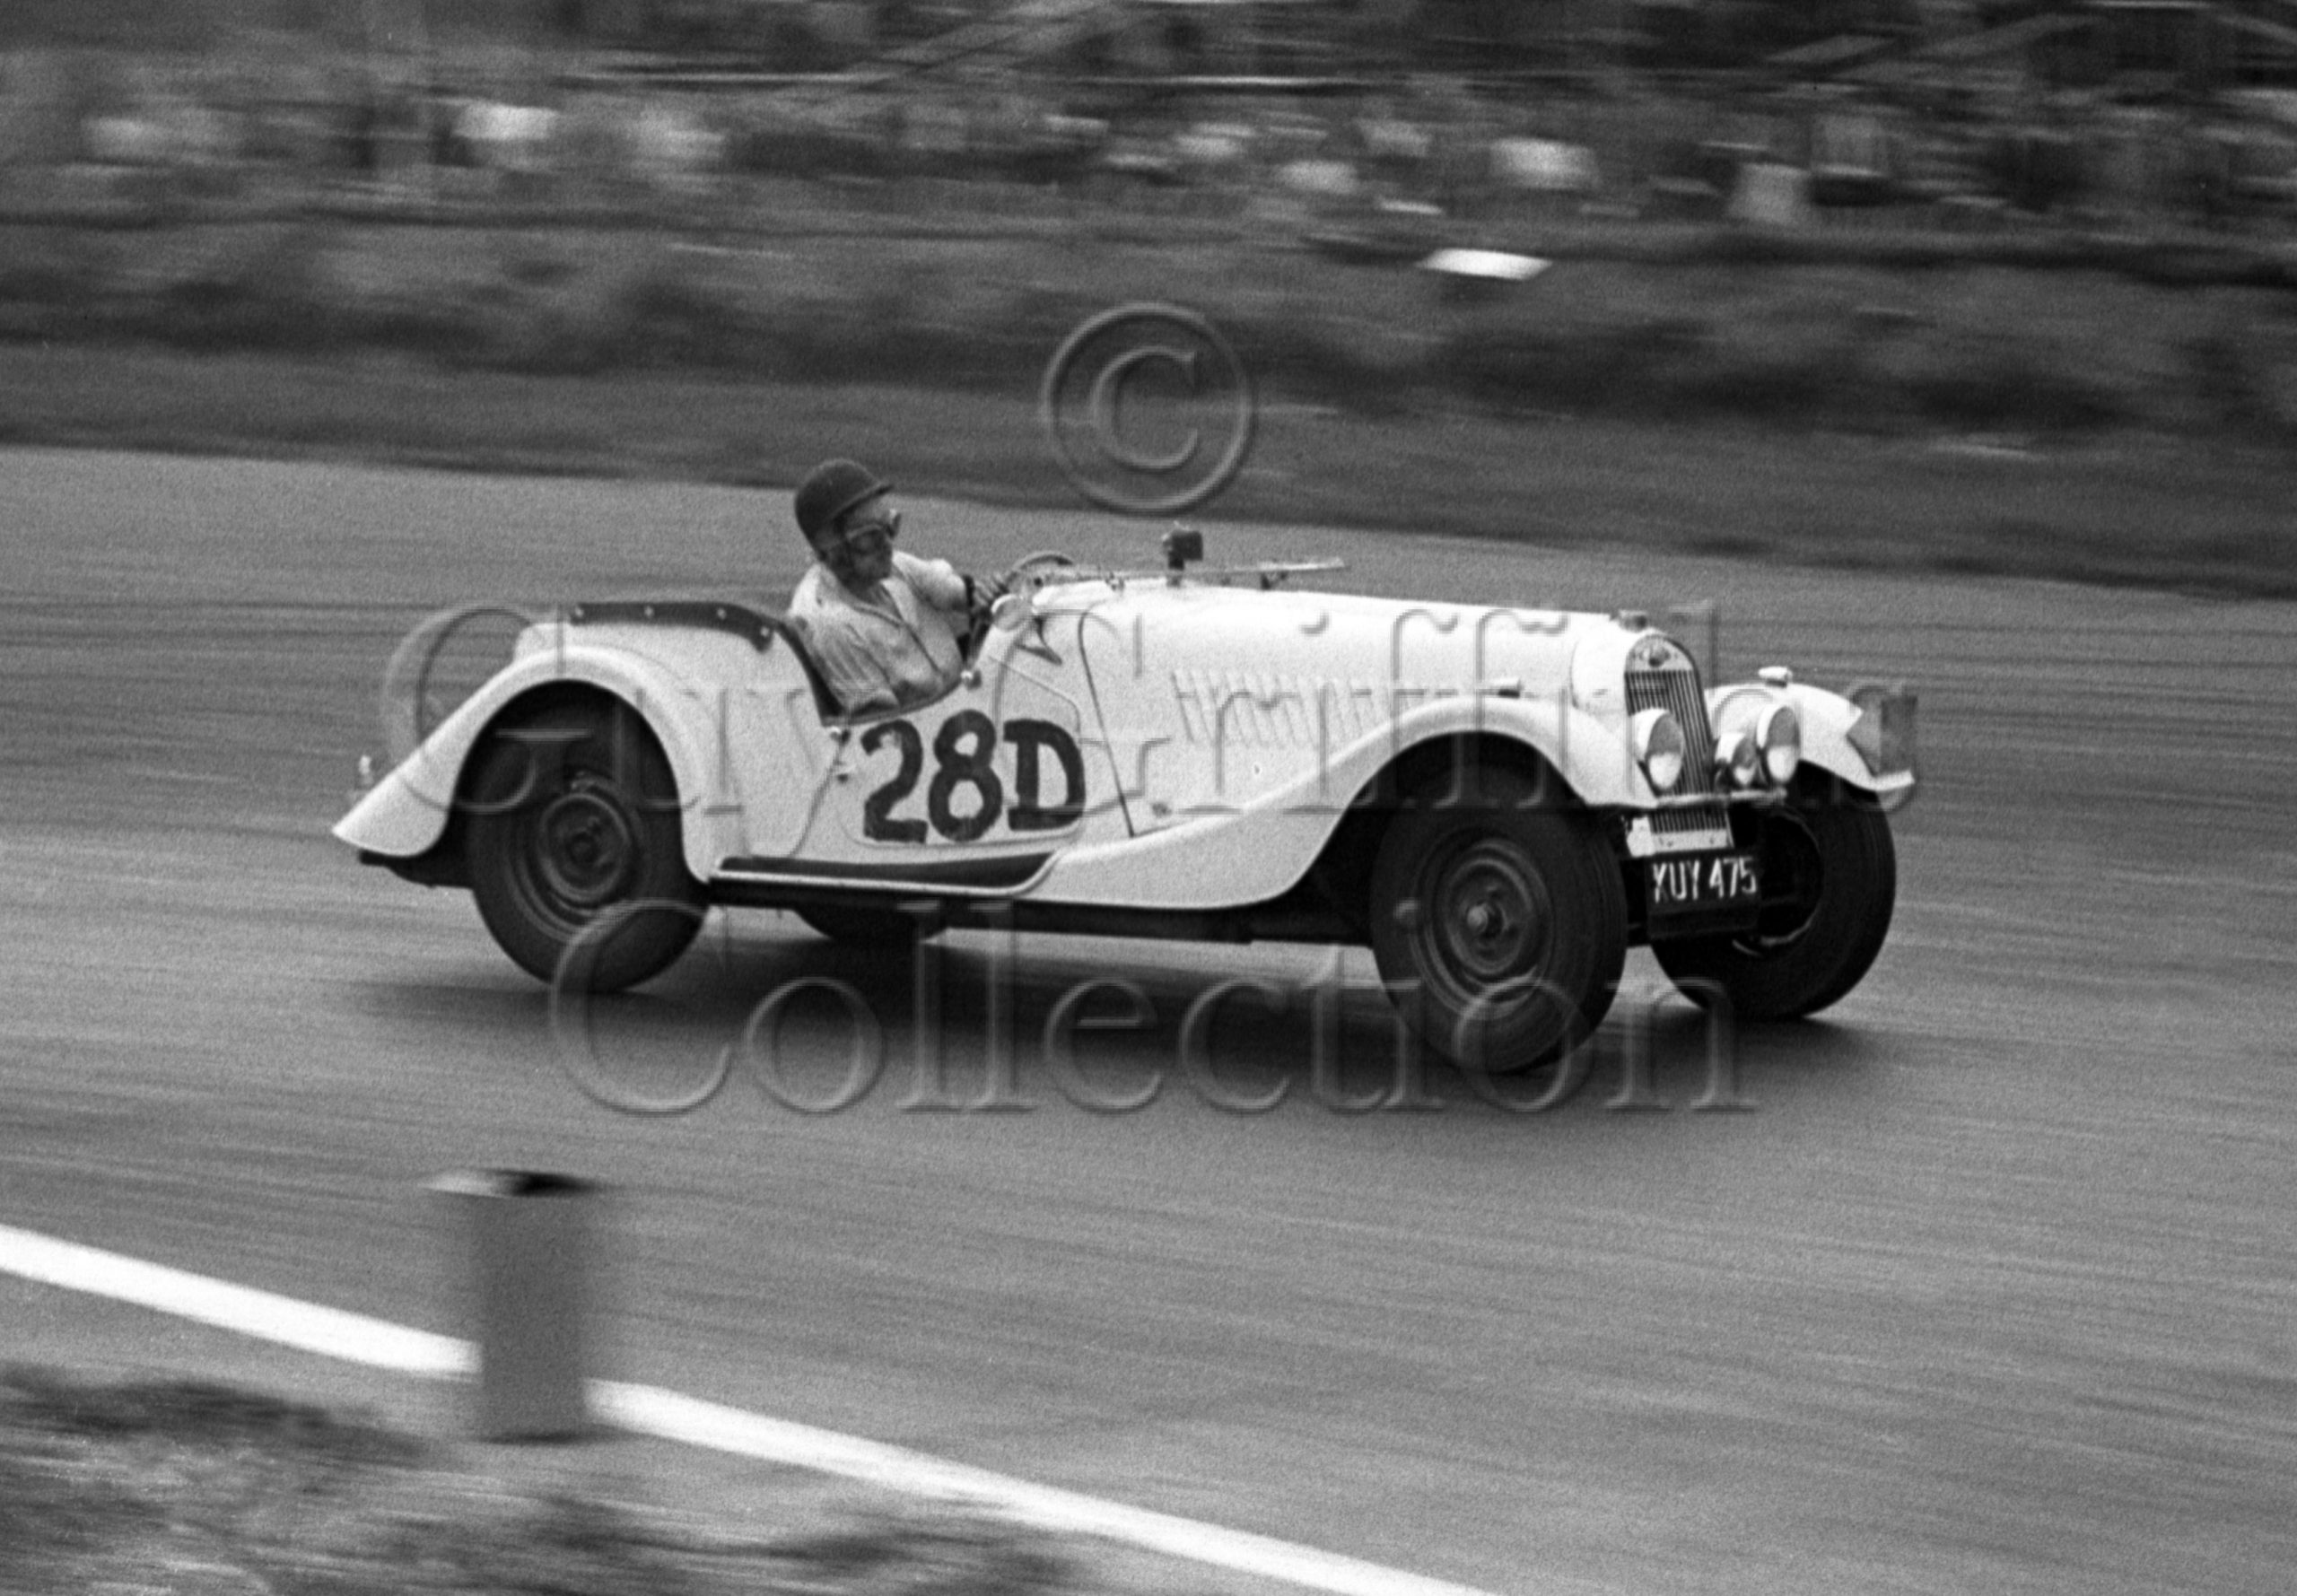 60-725–P-B-Reece–Morgan-Plus-4-KUY-475–Silverstone–30-08-1952.jpg - Guy Griffiths Collection